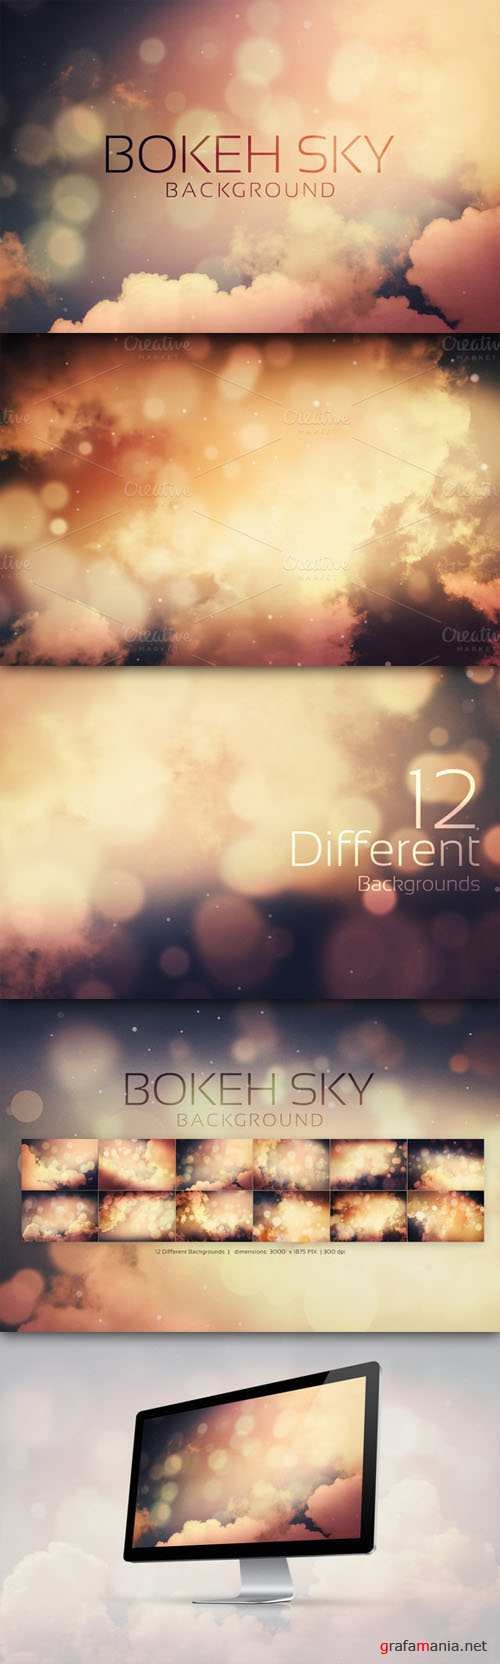 Creativemarket - Bokeh SKY Backgrounds